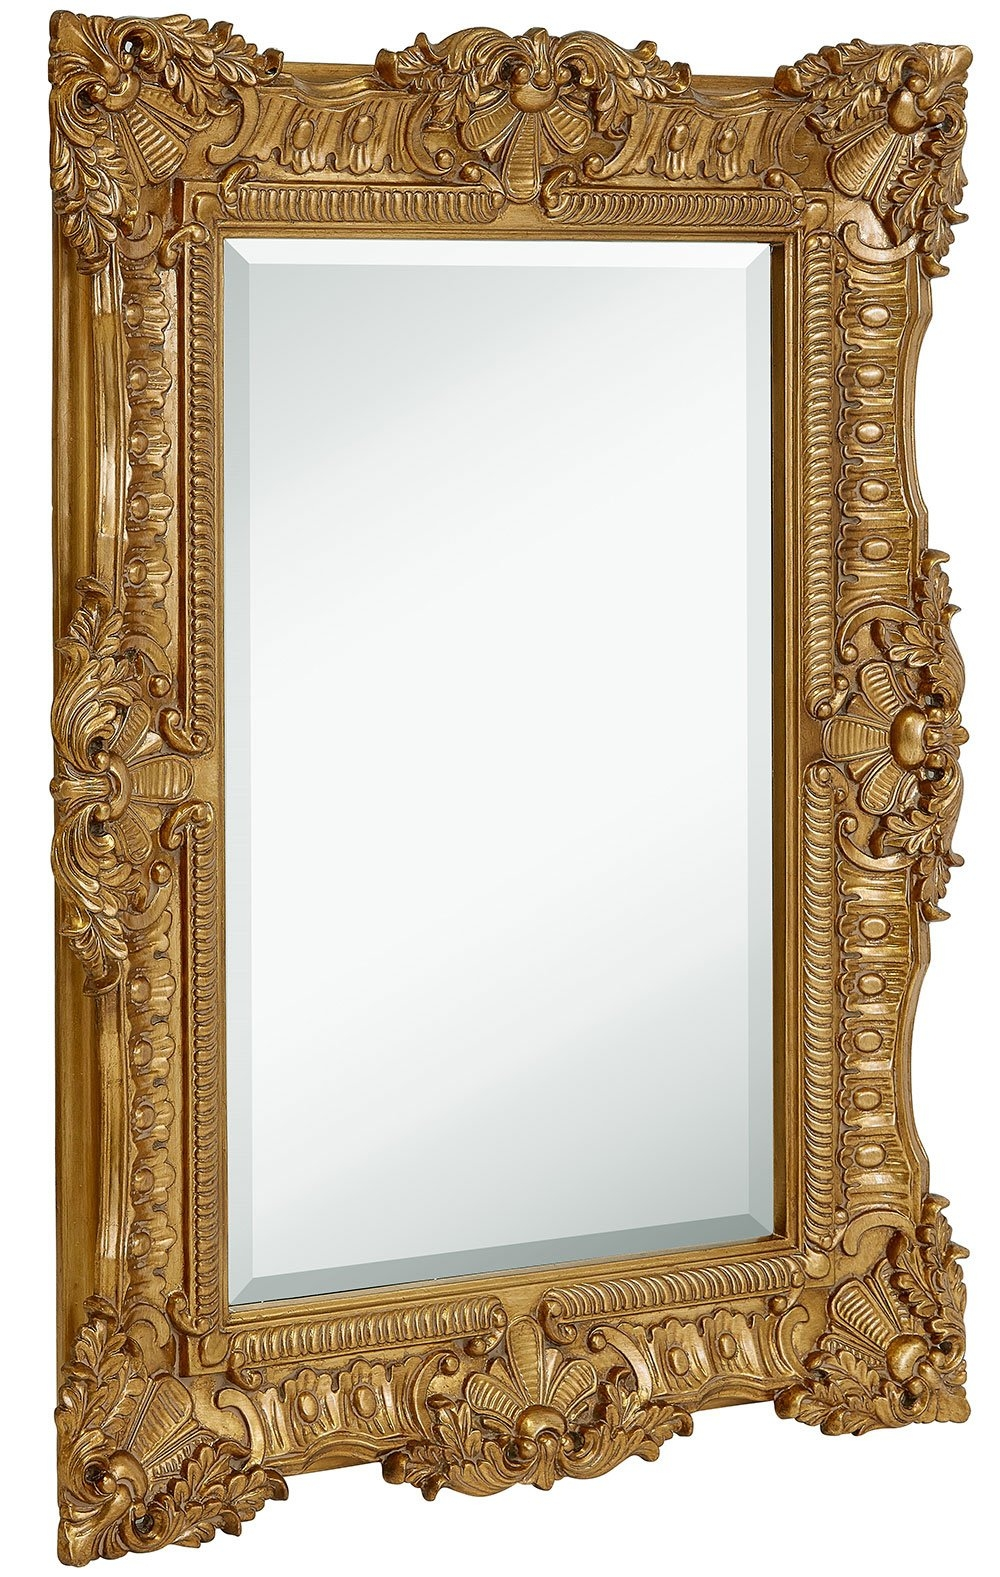 Best Deals On Gold Vintage Wall Mirrors Superoffers Inside Large Gold Ornate Mirror (Image 2 of 15)